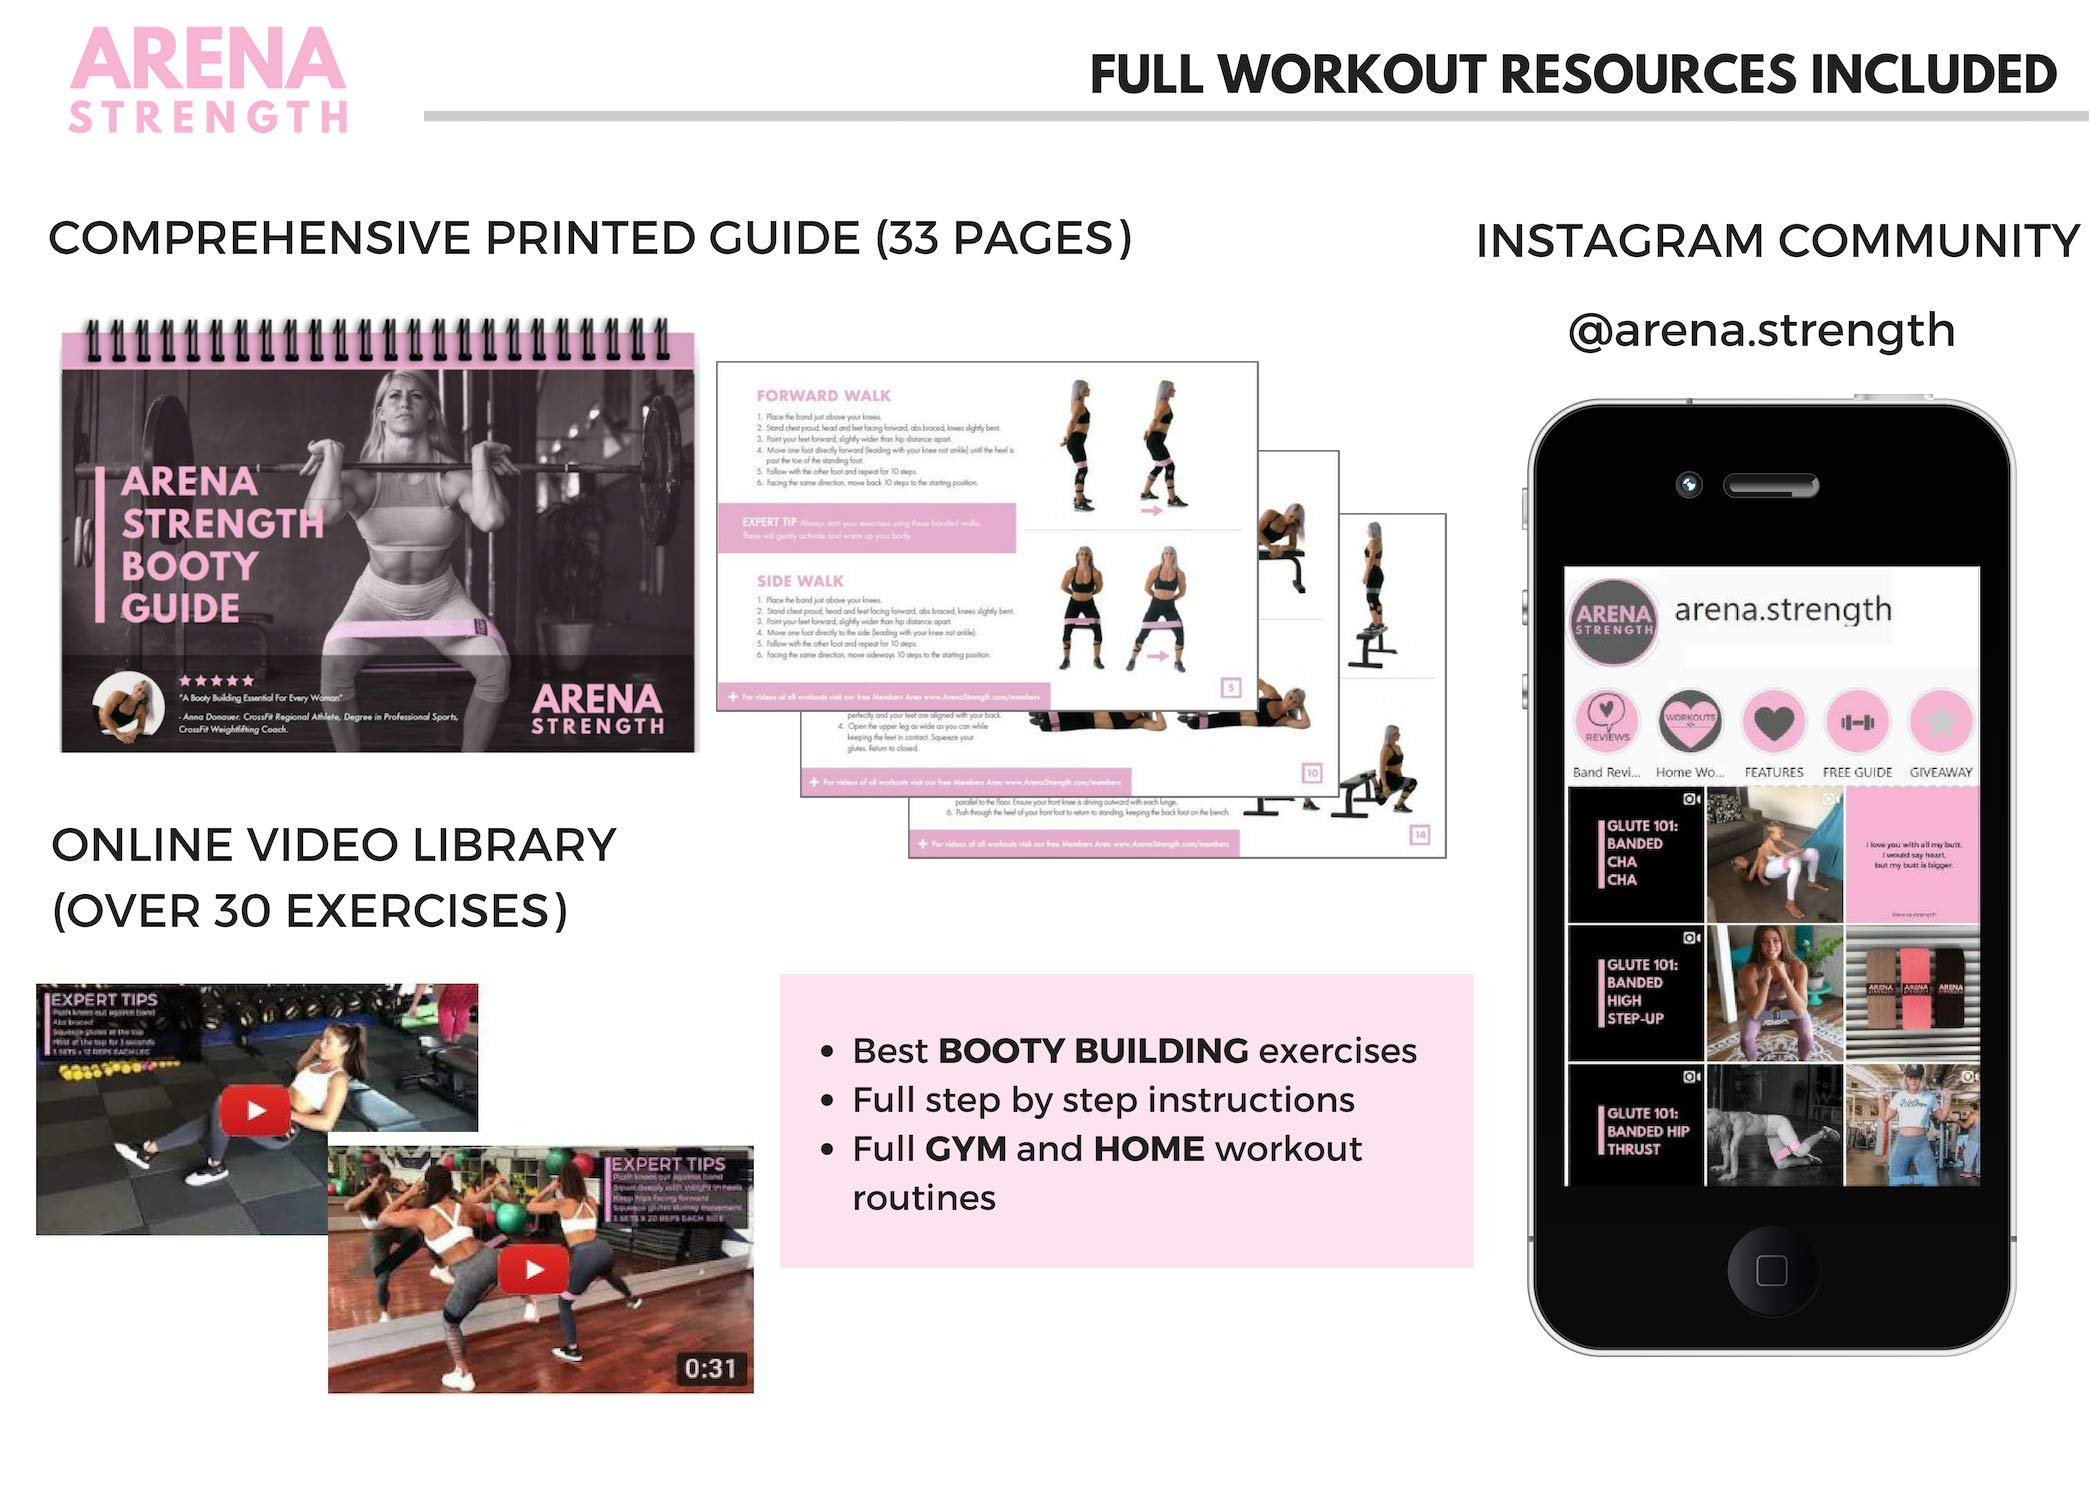 Arena Strength Booty Fabric Bands: Fabric Resistance Bands for Legs and Butt: 3 Pack Set. Perfect Workout Hip Band Resistance. Workout Program and Carry Case Included by Arena Strength (Image #3)